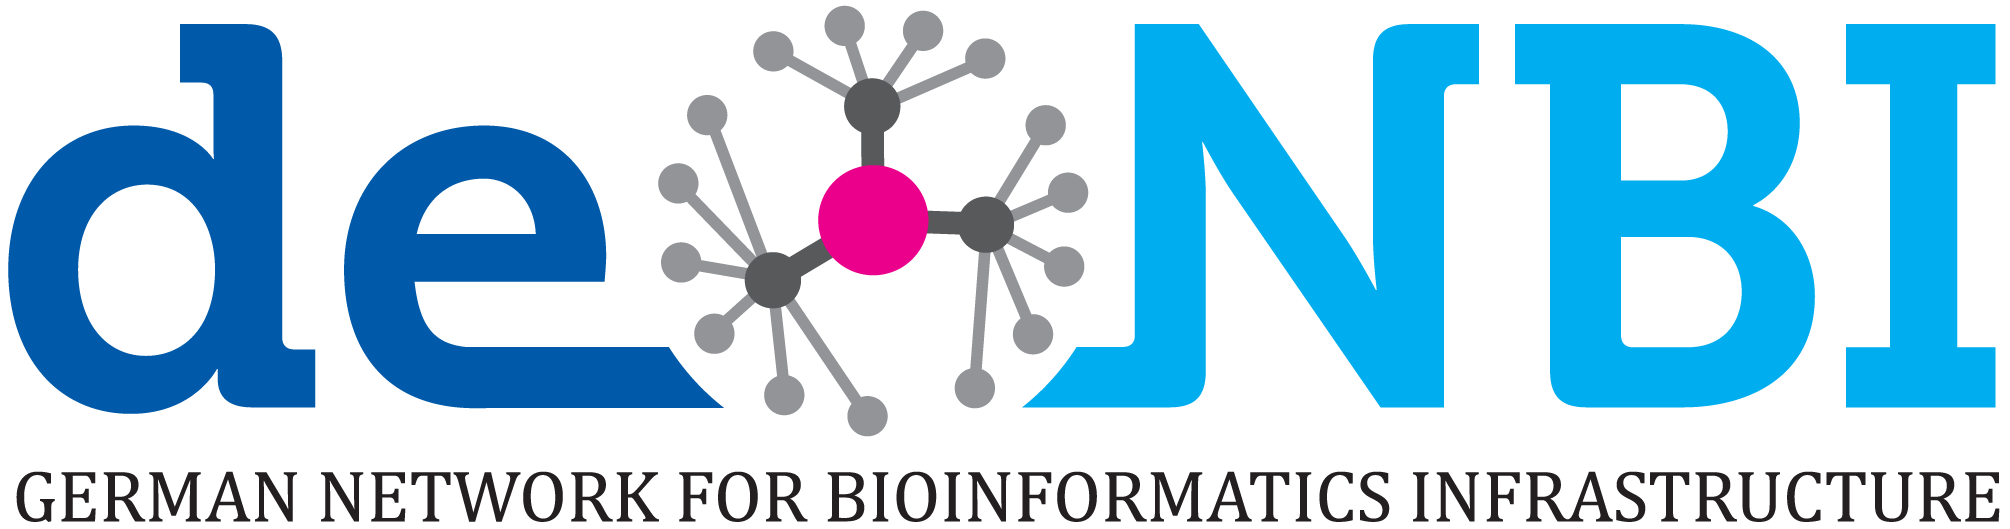 Sabio-RK is funded through the German Network for Bioinformatics Infrastructure